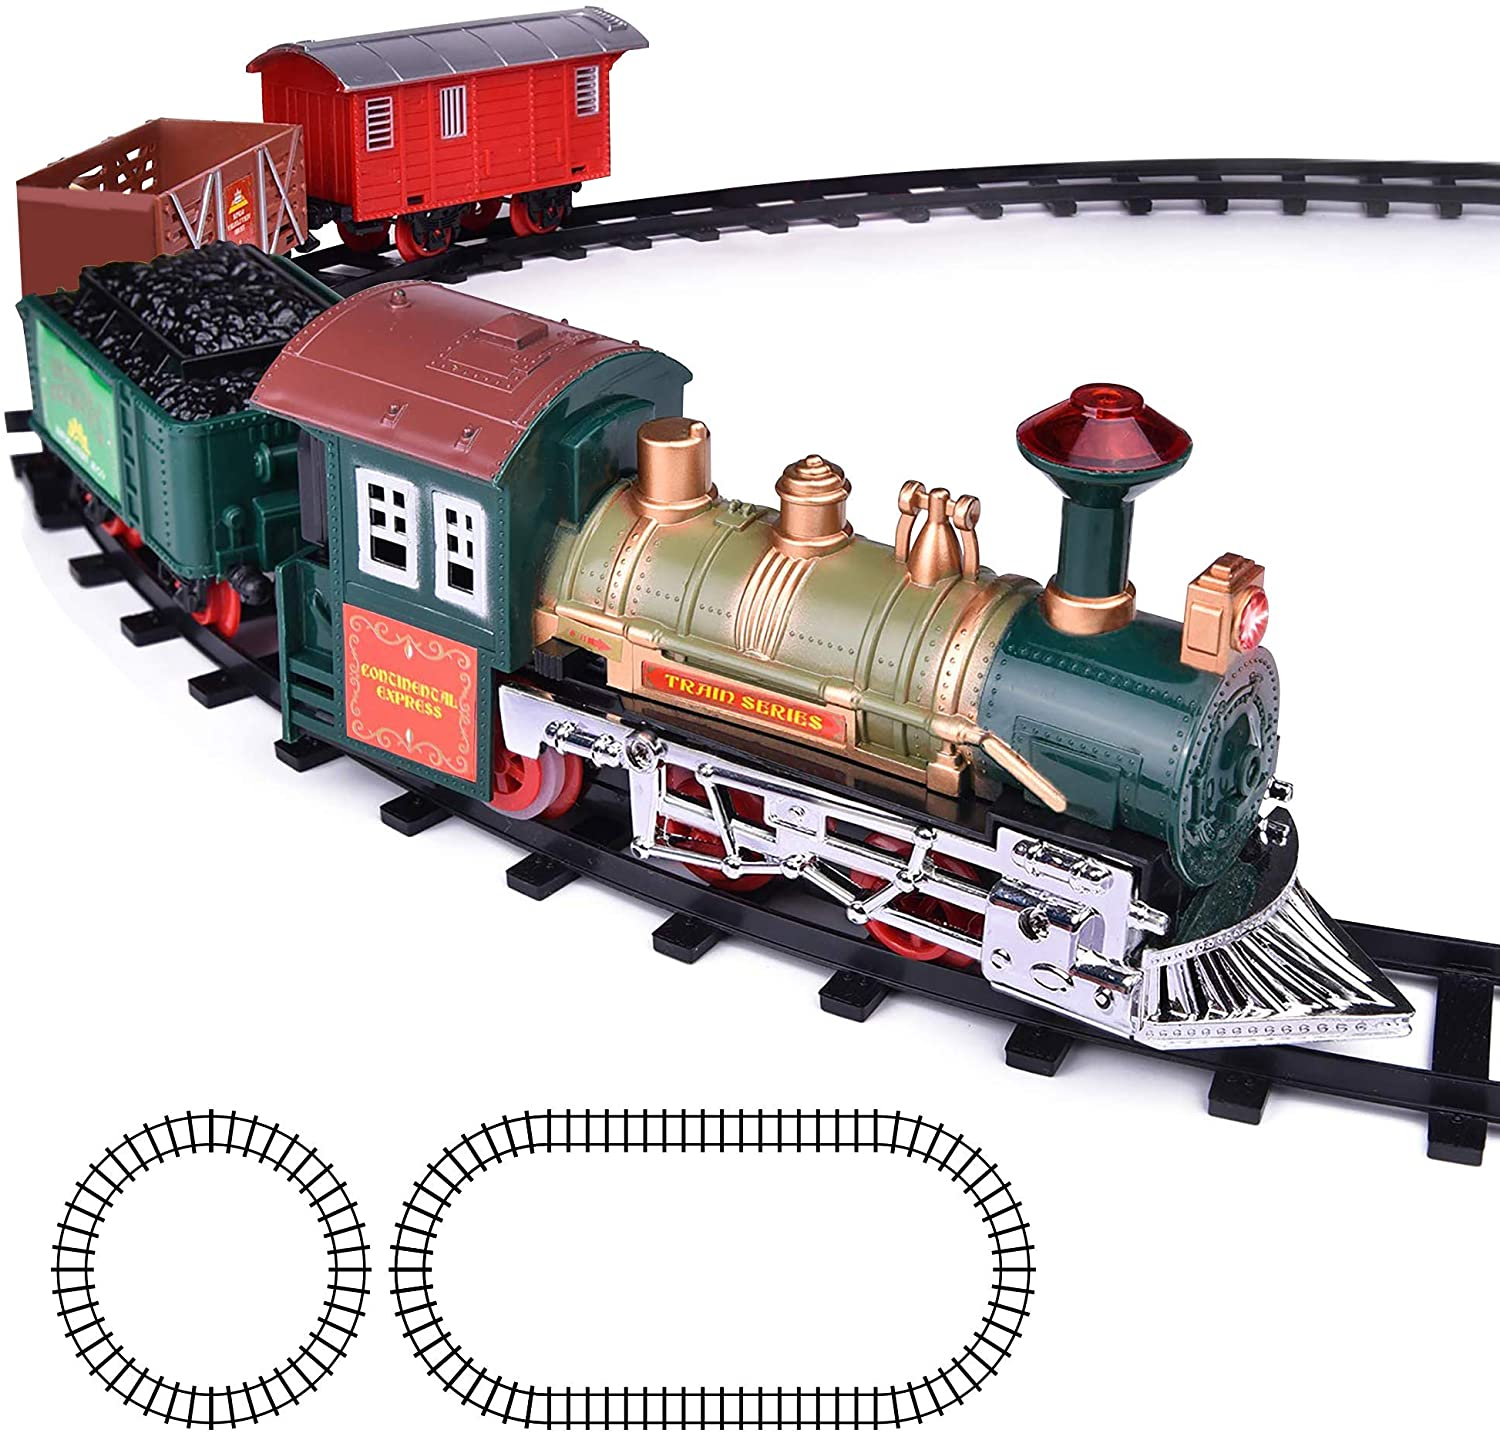 Amazon Com Artcreativity Deluxe Train Set For Kids Battery Operated Toy With 4 Cars And Tracks Durable Plastic Cute Christmas Holiday Train For Under The Tree Great Gift Idea For Boys